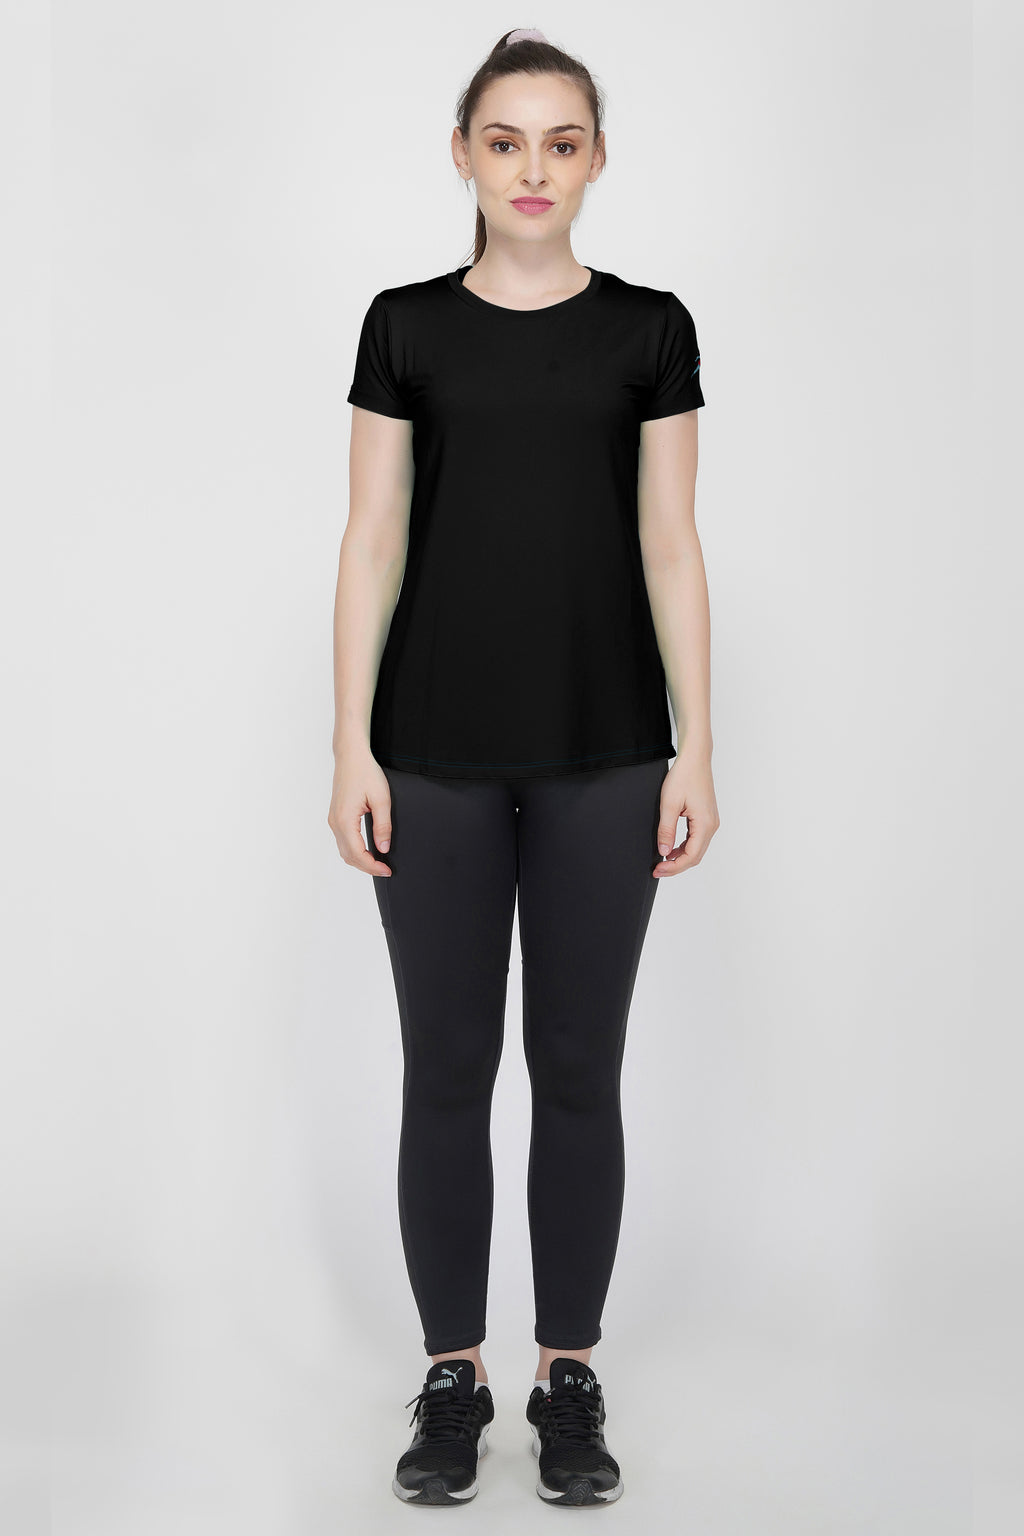 Move Crew Gym T-shirt For Women - Black